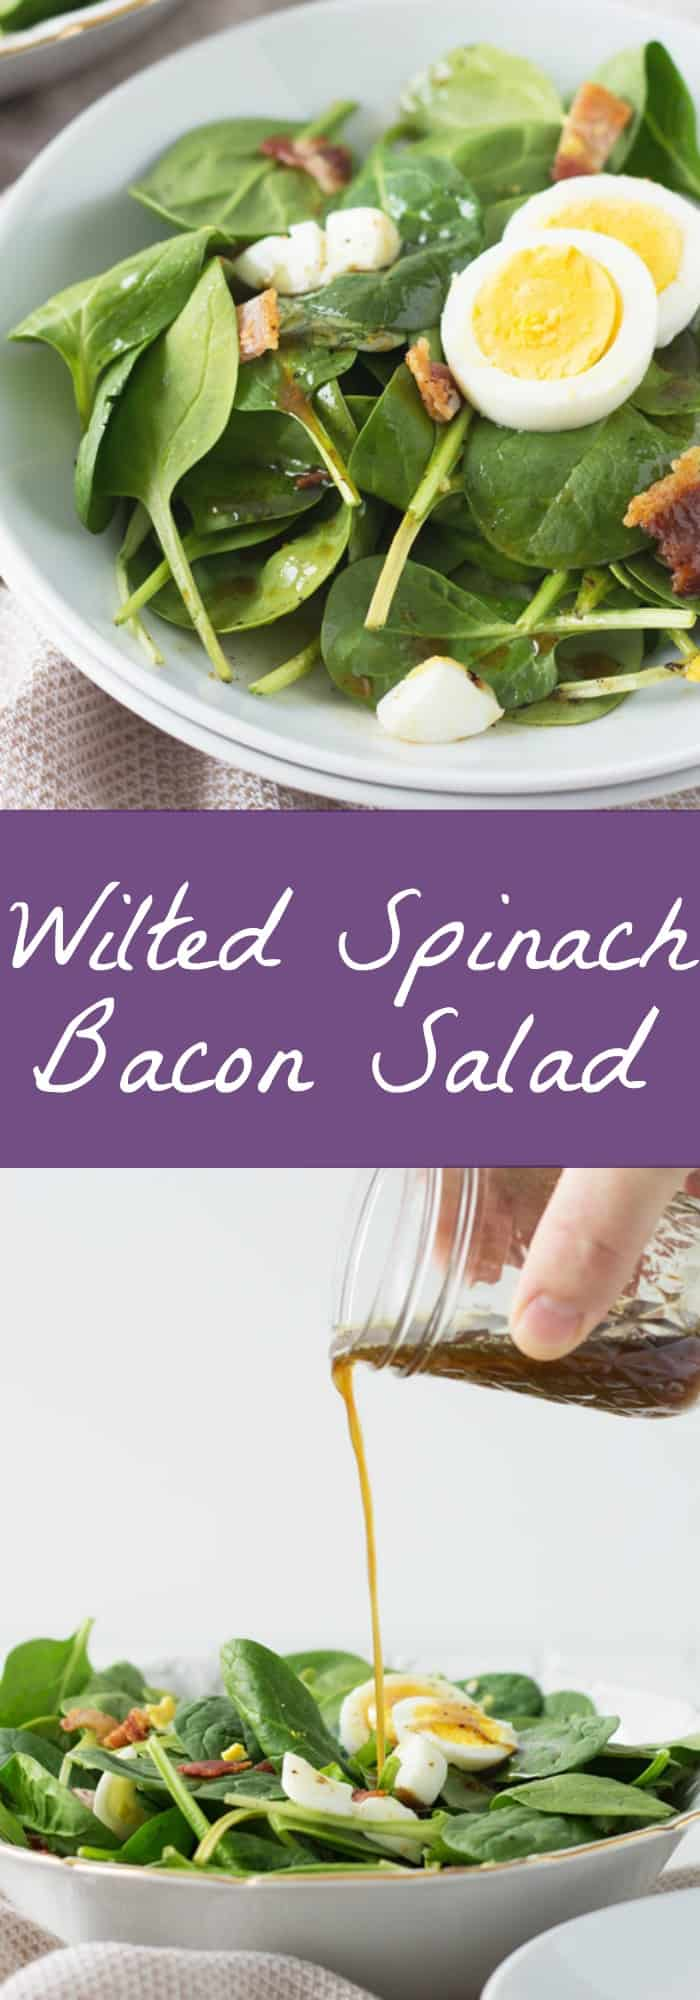 Wilted Bacon Spinach Salad -this super easy salad recipe is a great way to use up some extra boiled eggs! | www.countrysidecravings.com